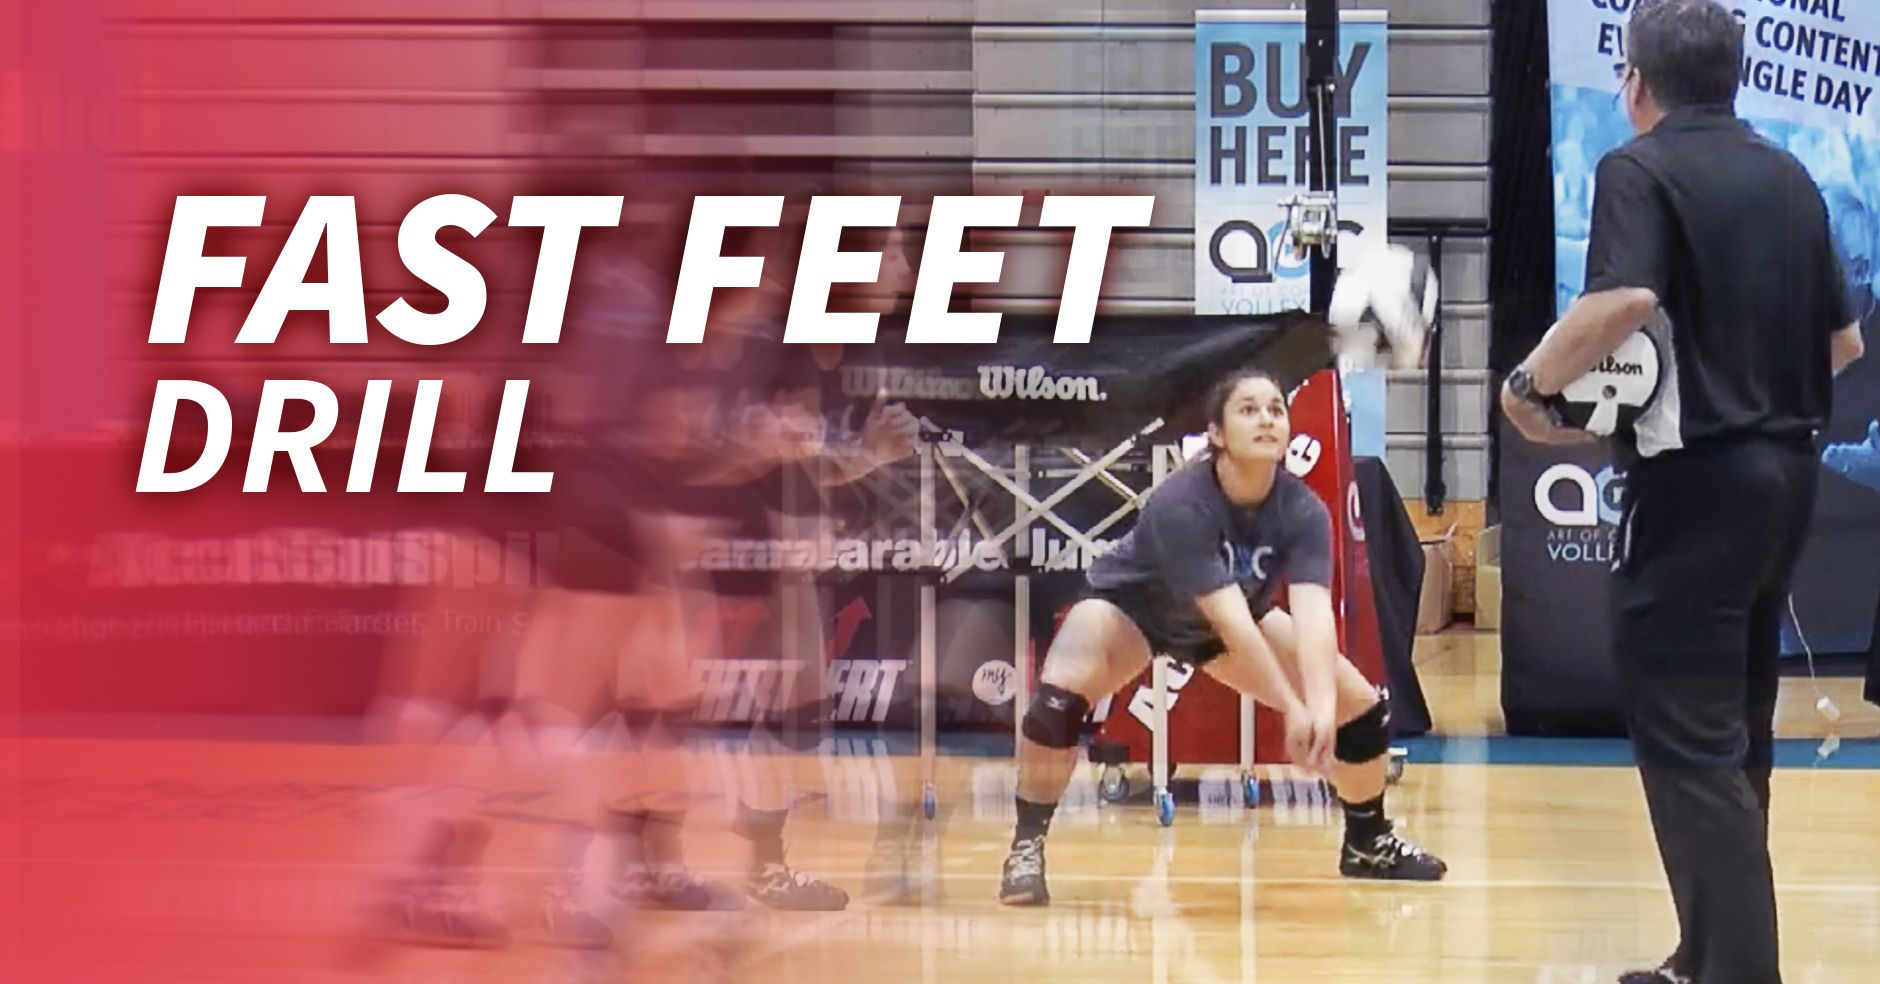 Fast Feet Drill Focused On Passing And Consistency Volleyball Drills Coaching Volleyball Volleyball Practice